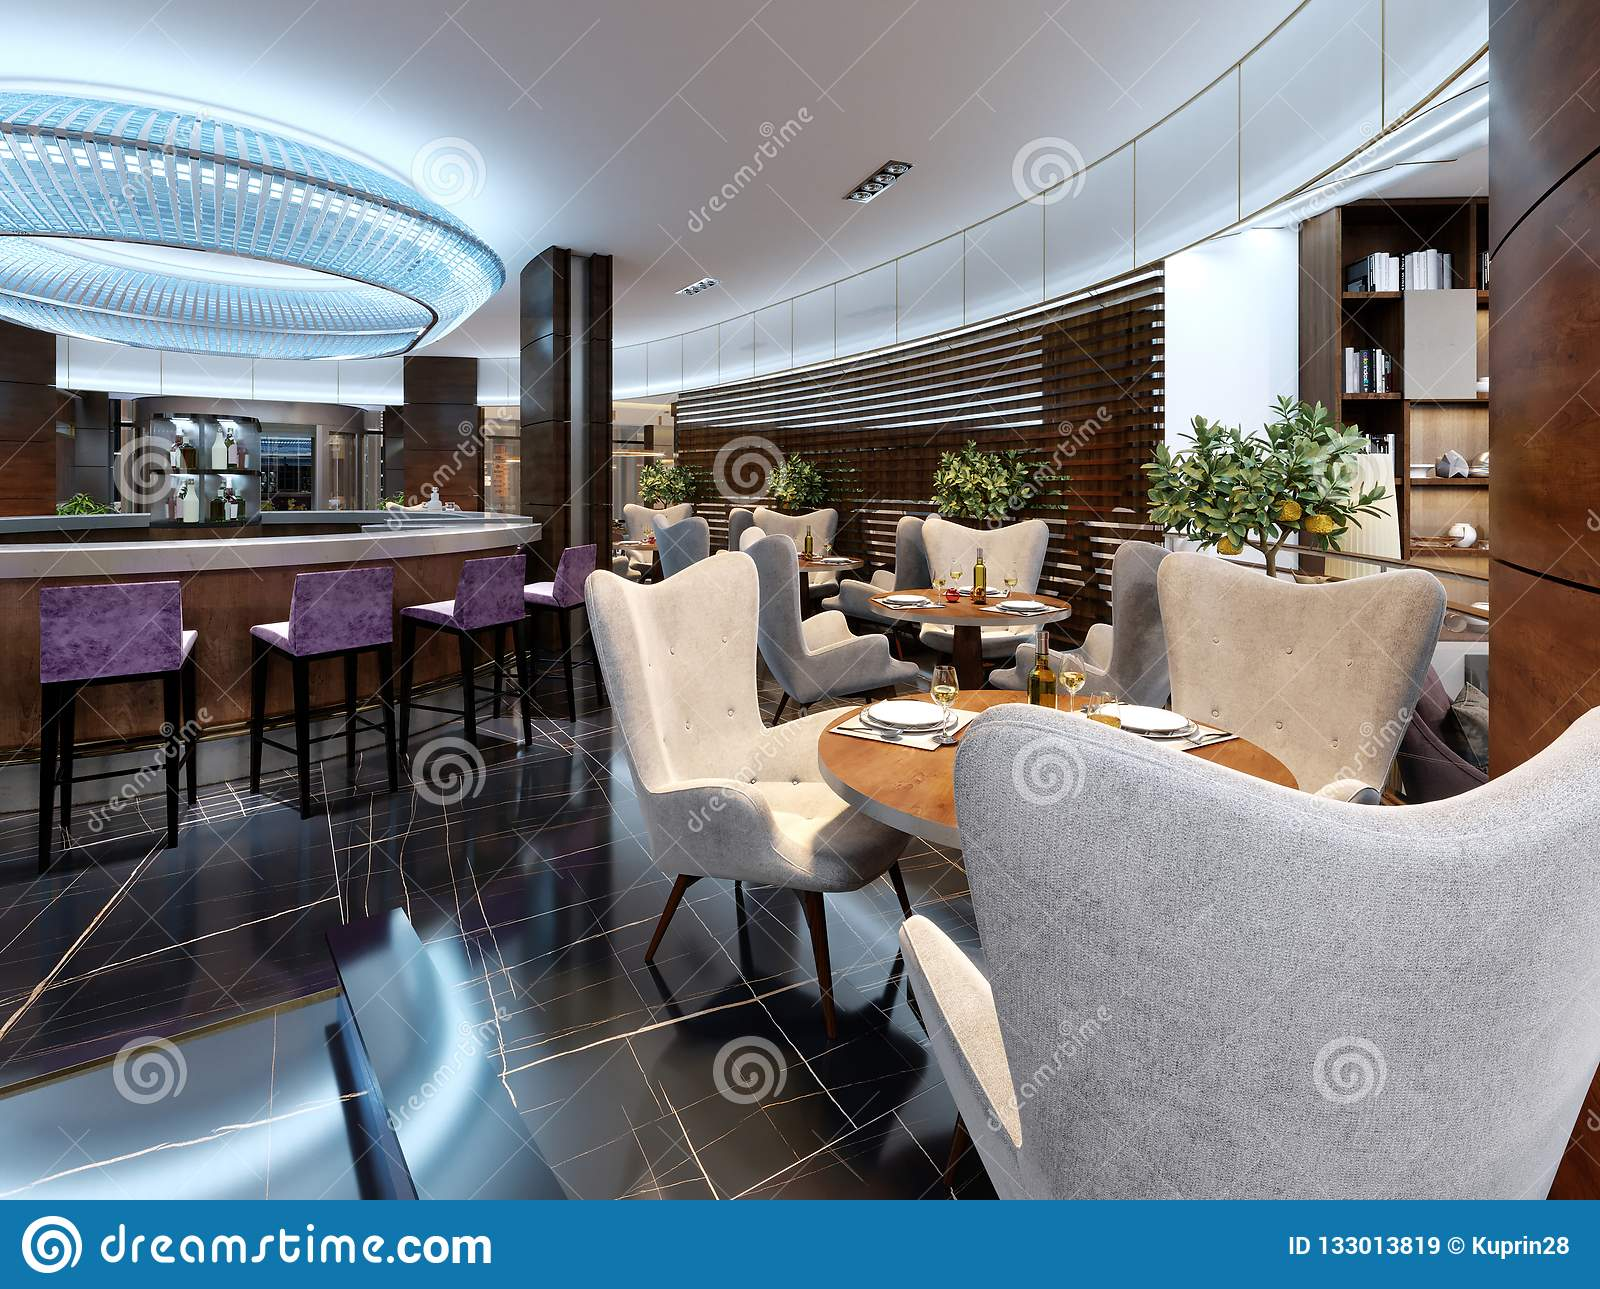 Modern bar restaurant in a luxurious modern style with elegant furniture and lighting